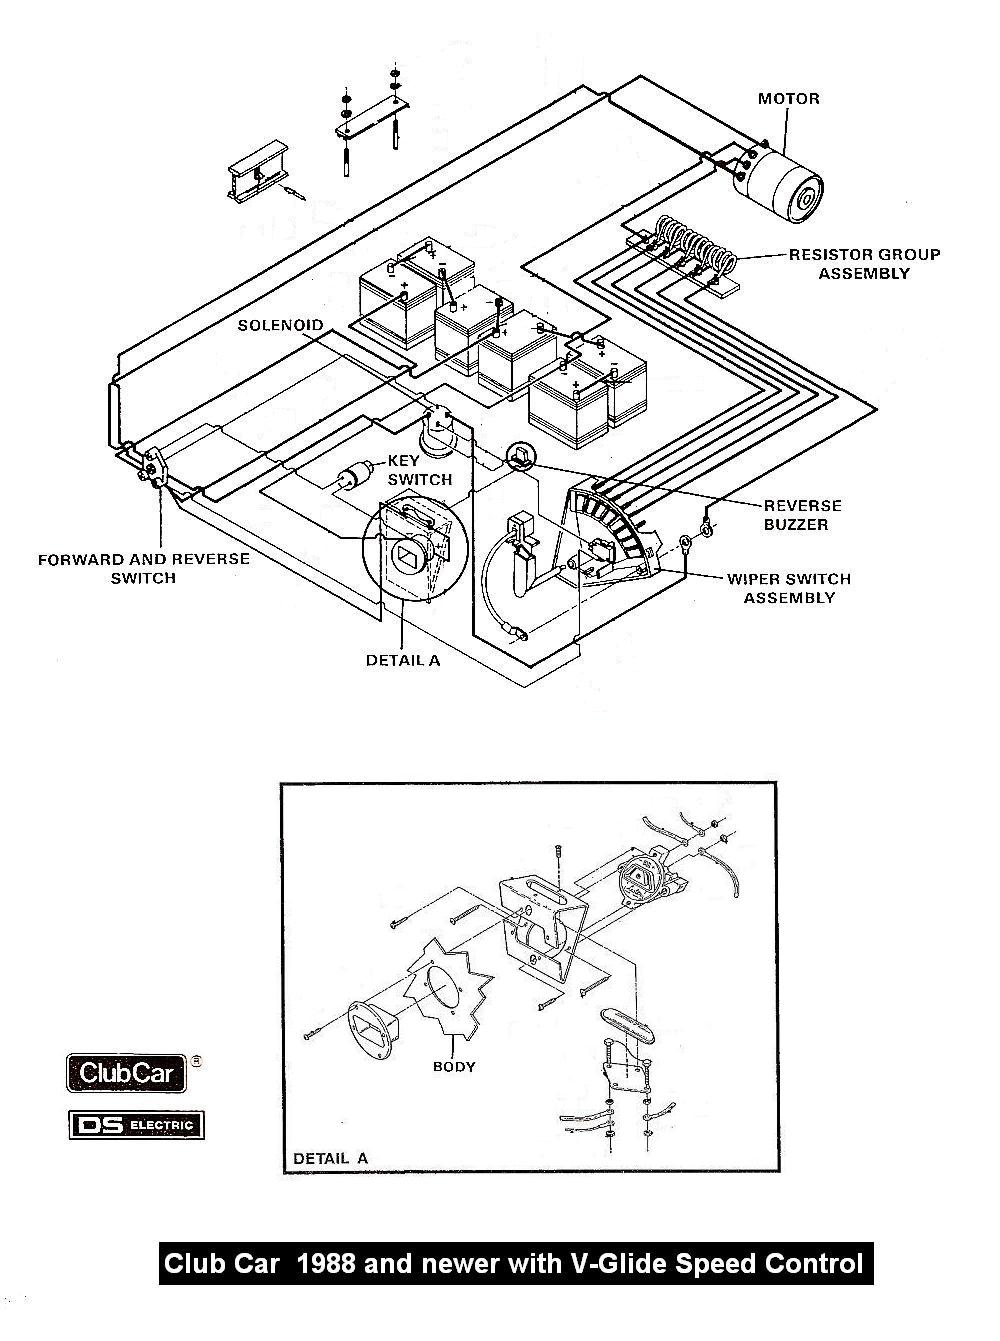 VintageGolfCartParts.com - on e-z-go wiring diagram, club car 36v wiring-diagram, club car ds voltage regulator, club car ds clutch, club car ds carburetor, club car ds repair, club car ds horn, club car ds parts, club car ds golf cart, club car ds model, club car ds fuse location, carryall wiring diagram, ezgo cart wiring diagram, club car electrical diagram, home wiring diagram, fairplay wiring diagram, club car parts diagram, club car ds specifications, club car motor diagram, club car ds suspension,